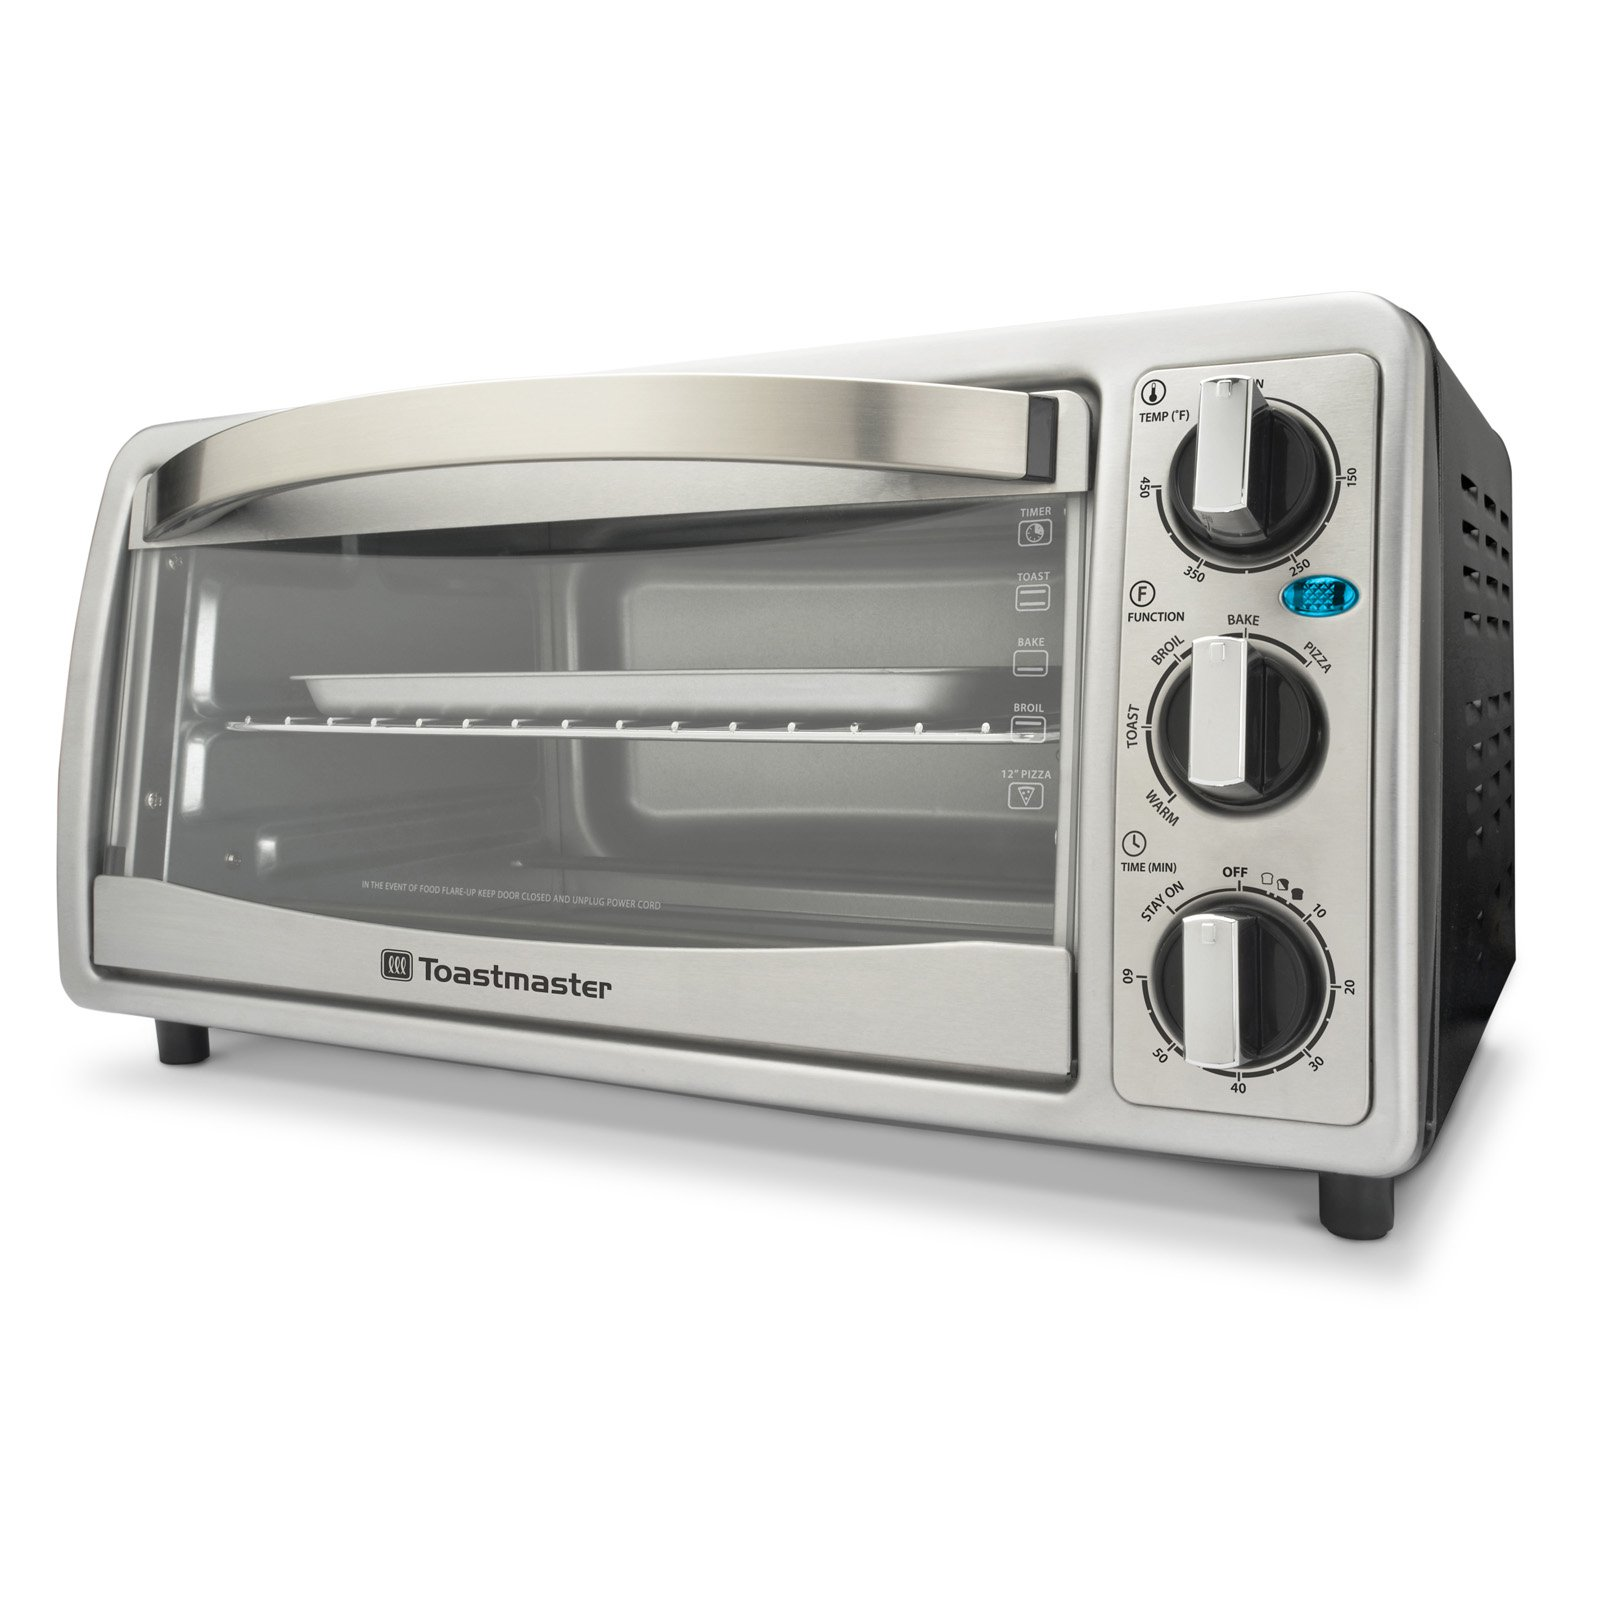 6-Slice Silver Toastmaster Toaster Oven by Toastmaster